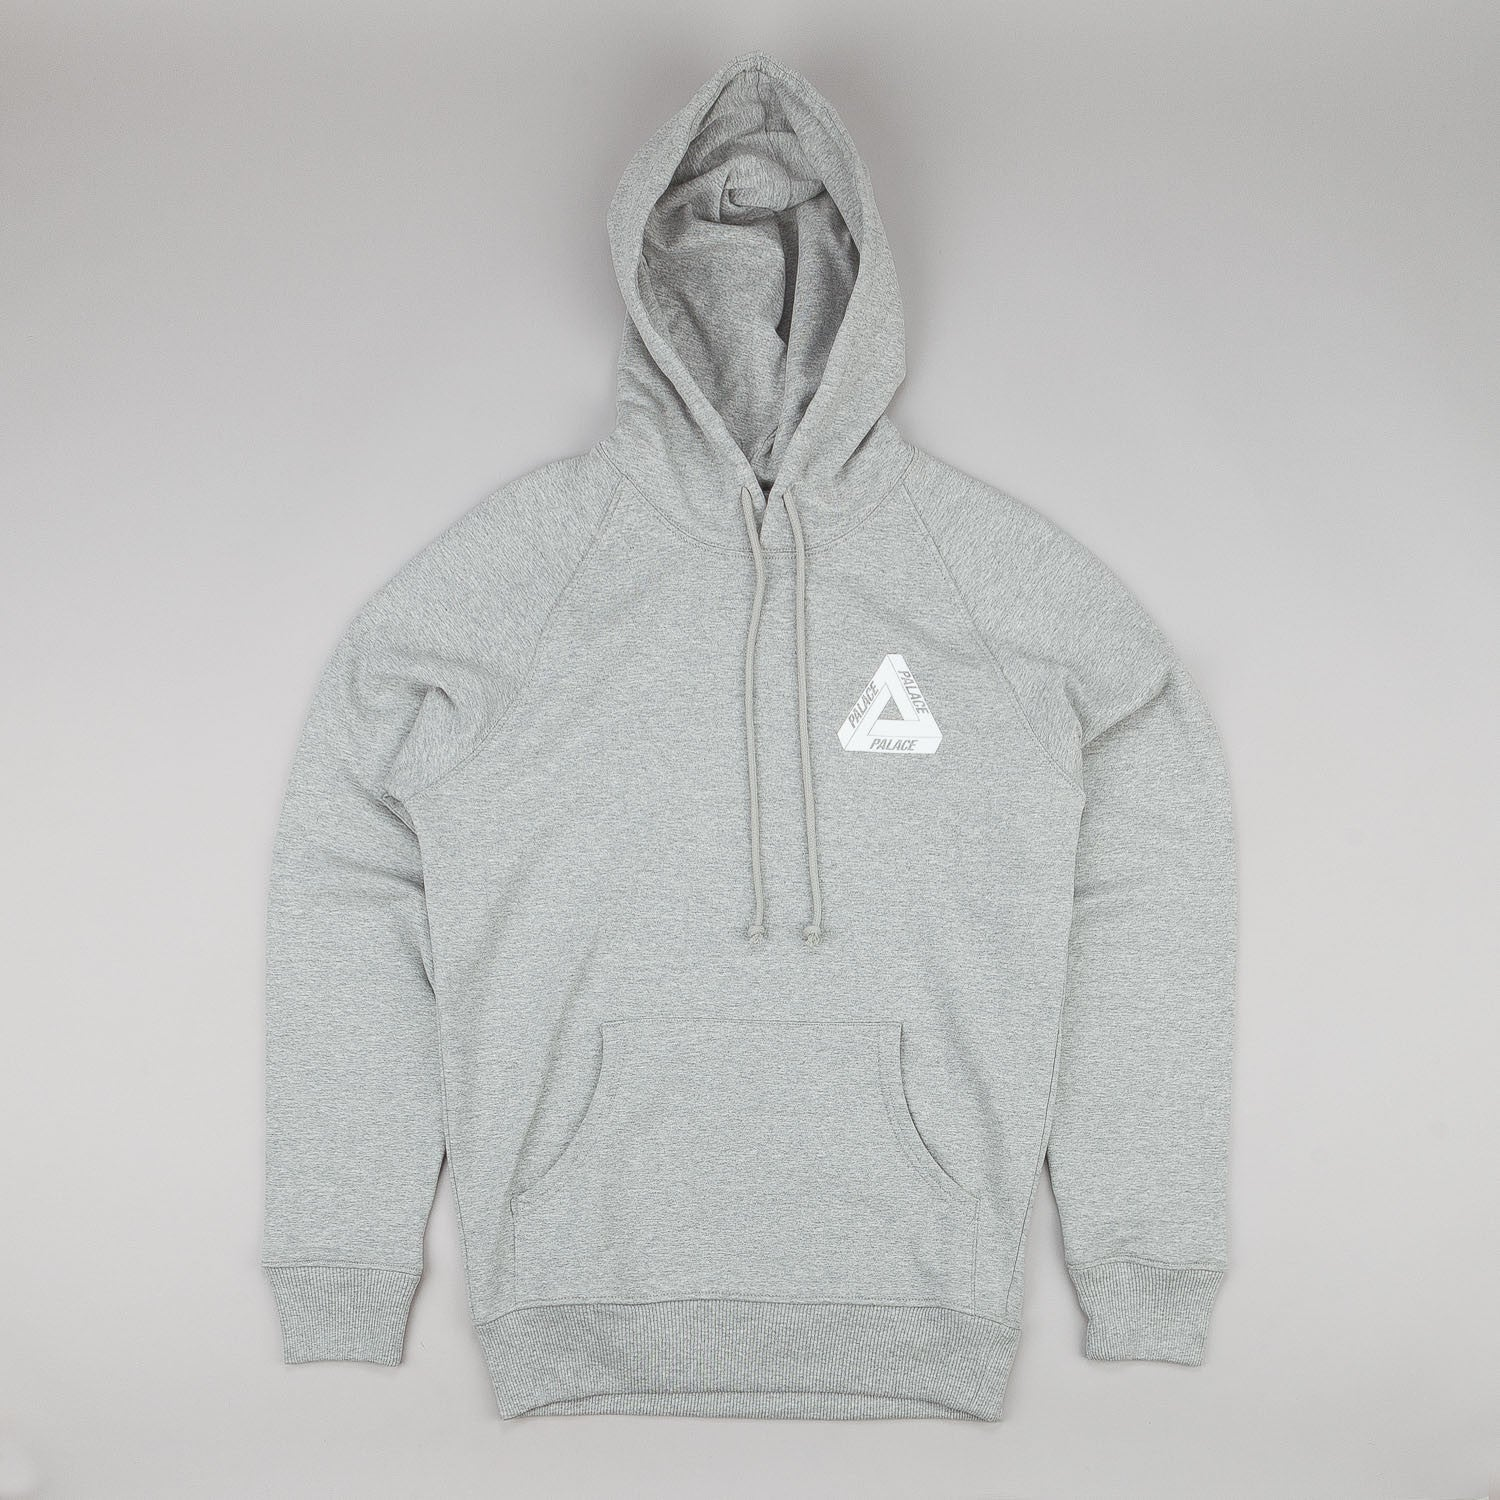 Palace Tri-Wild Hooded Sweatshirt